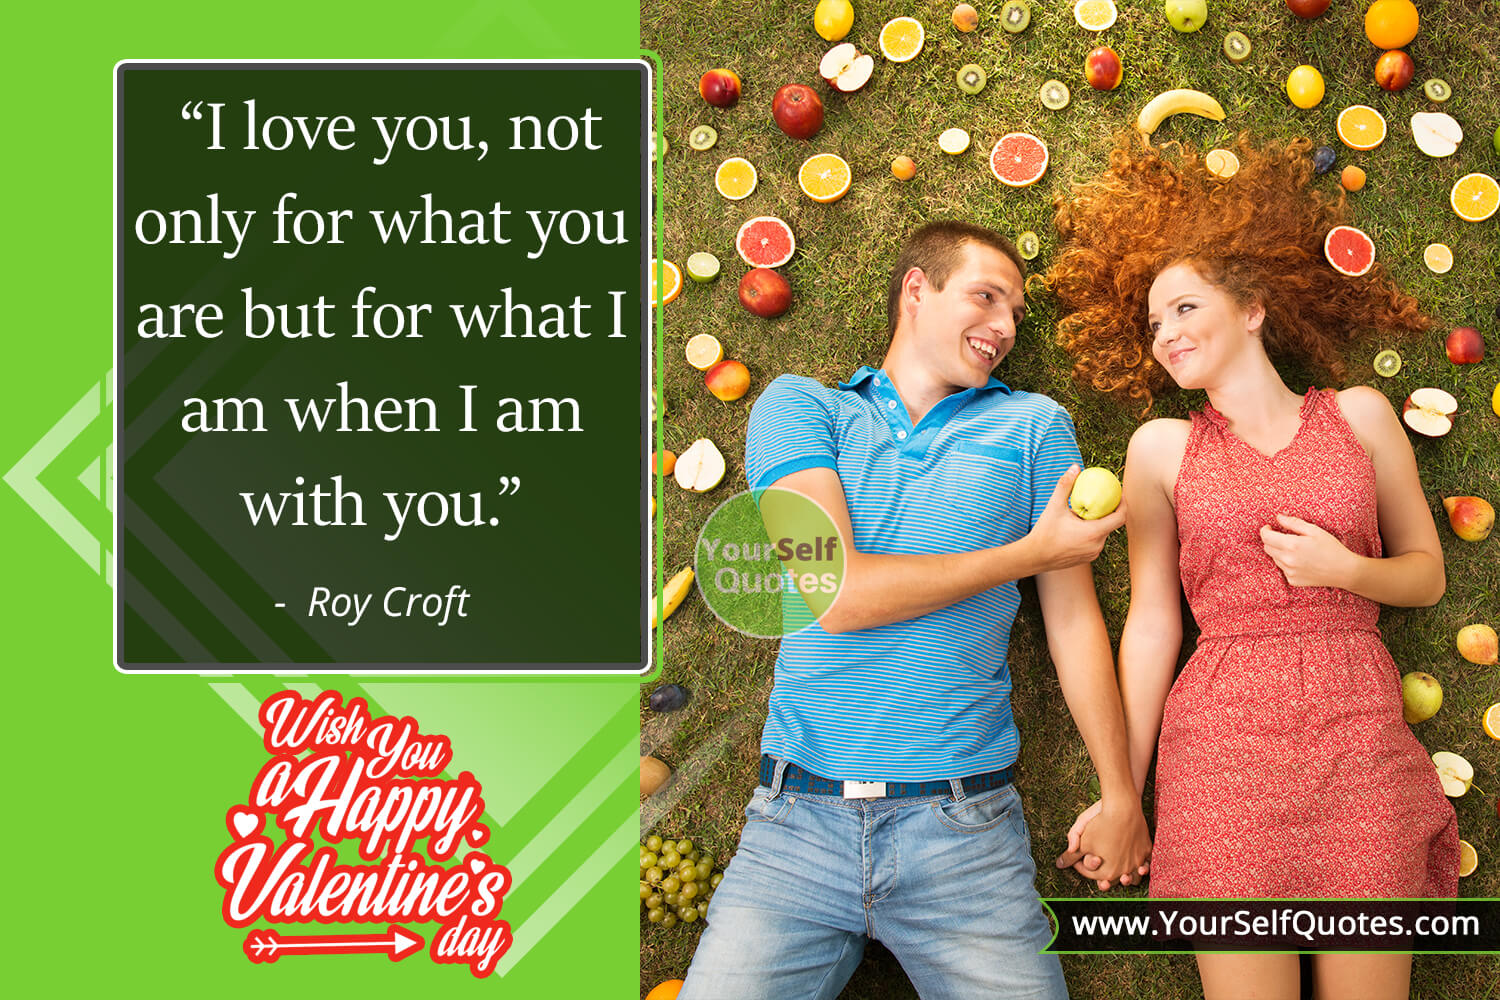 Valentine Day Quotes Photos by Roy Croft